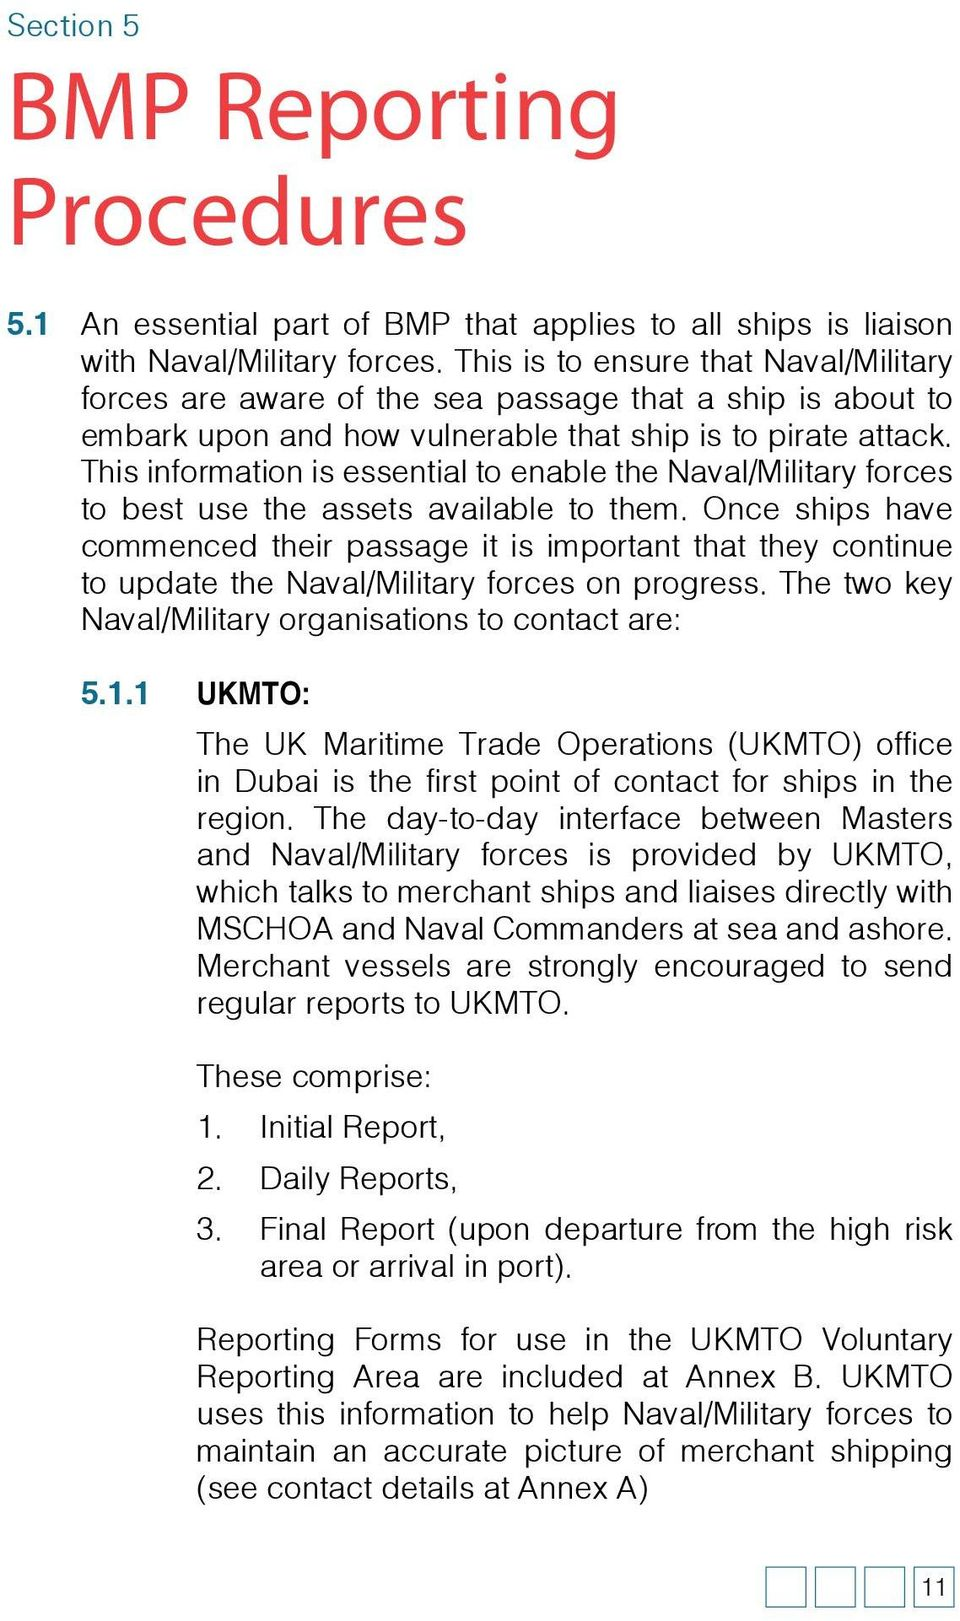 This information is essential to enable the Naval/Military forces to best use the assets available to them.